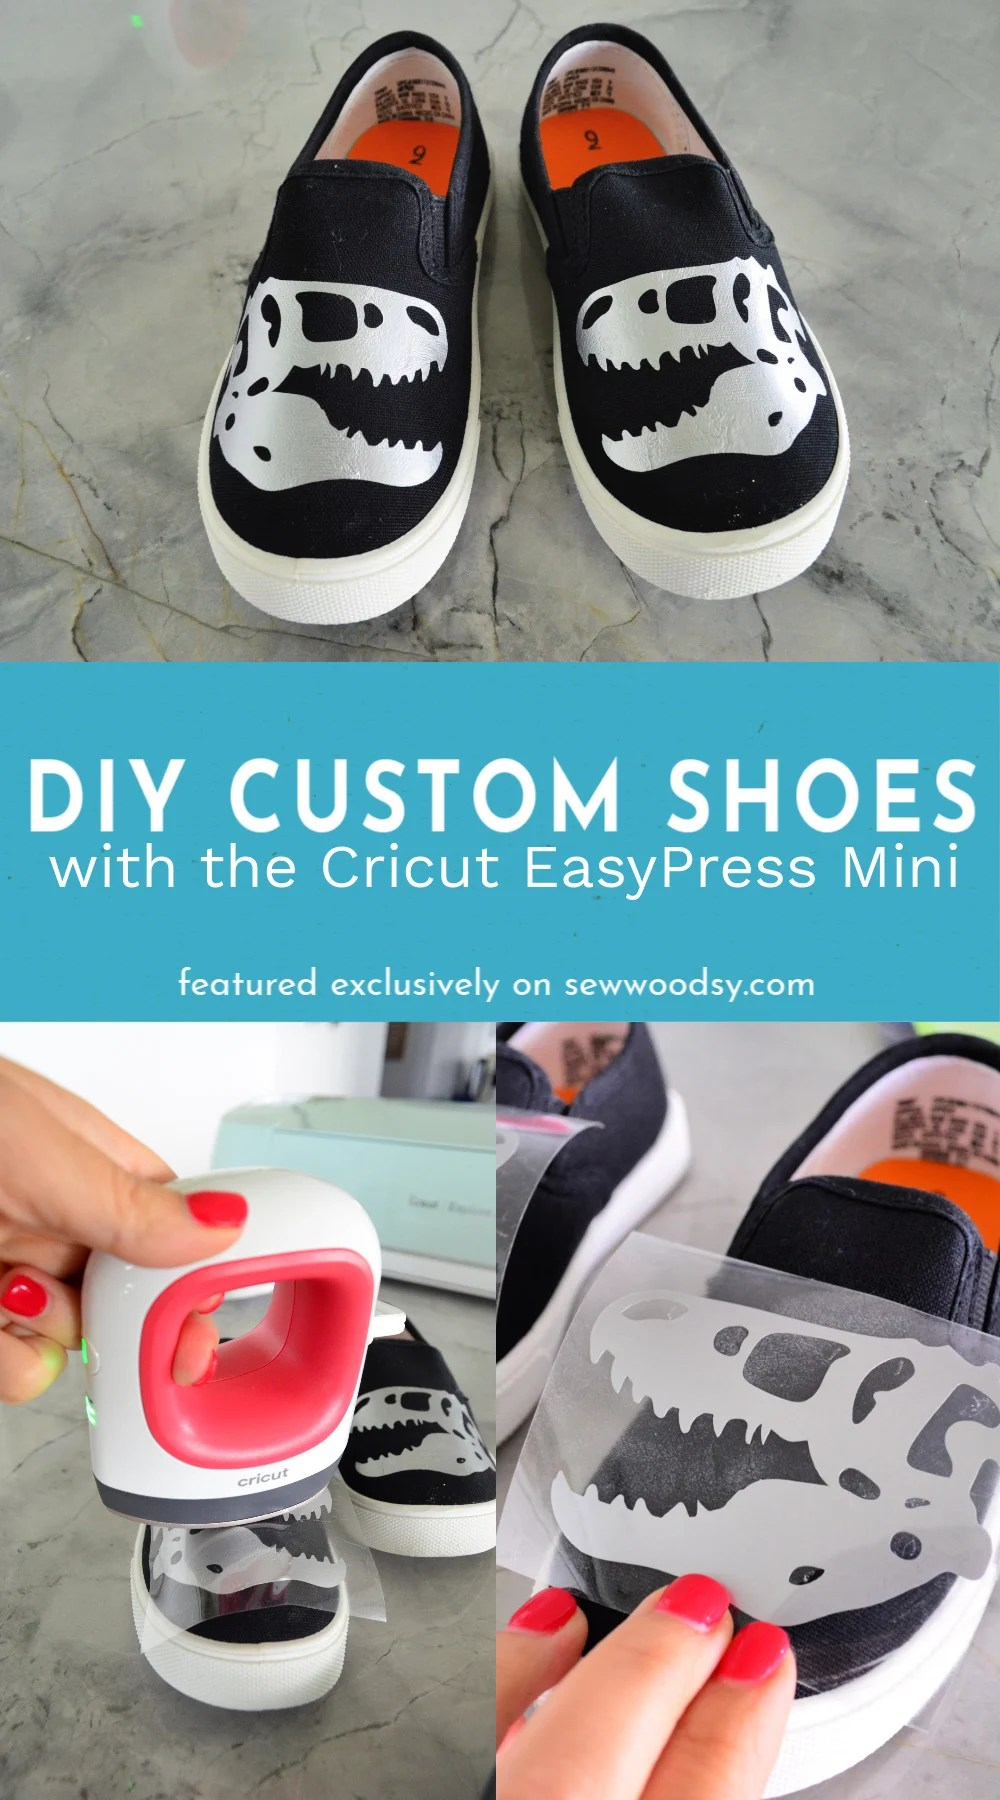 DIY Custom Shoes with the Cricut EasyPress Mini